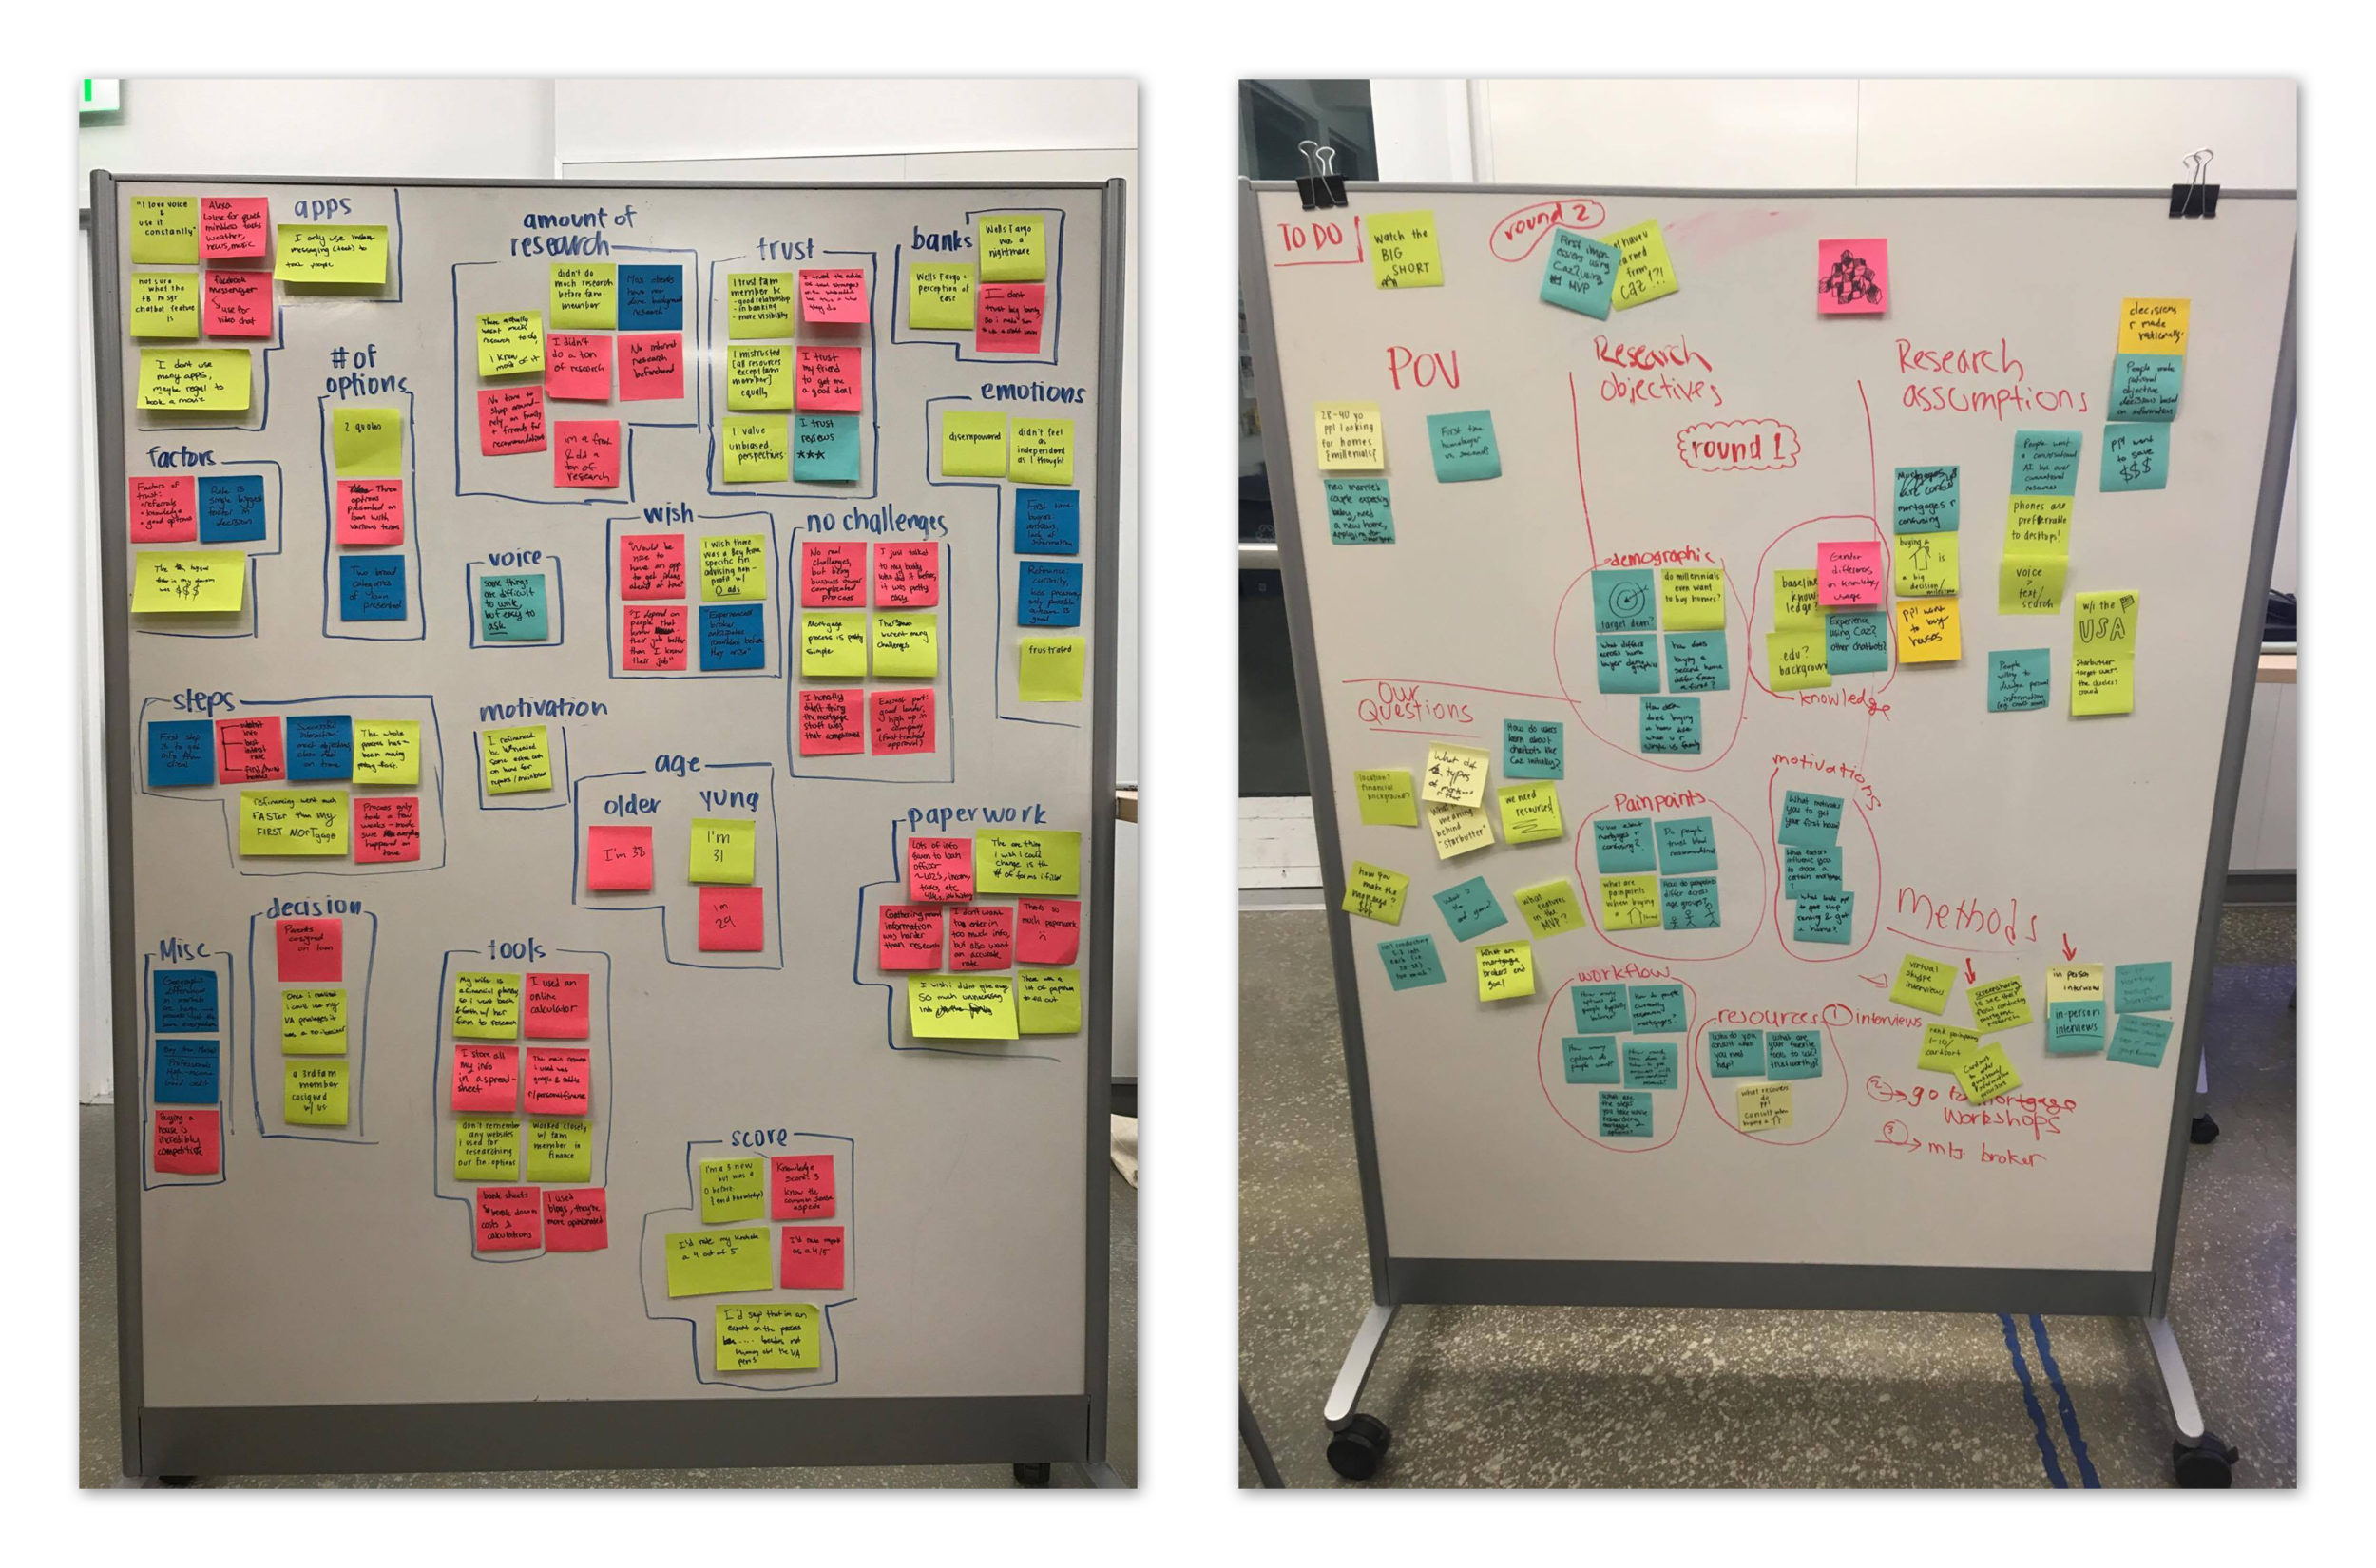 Affinity diagramming insights from first 20 interviews.